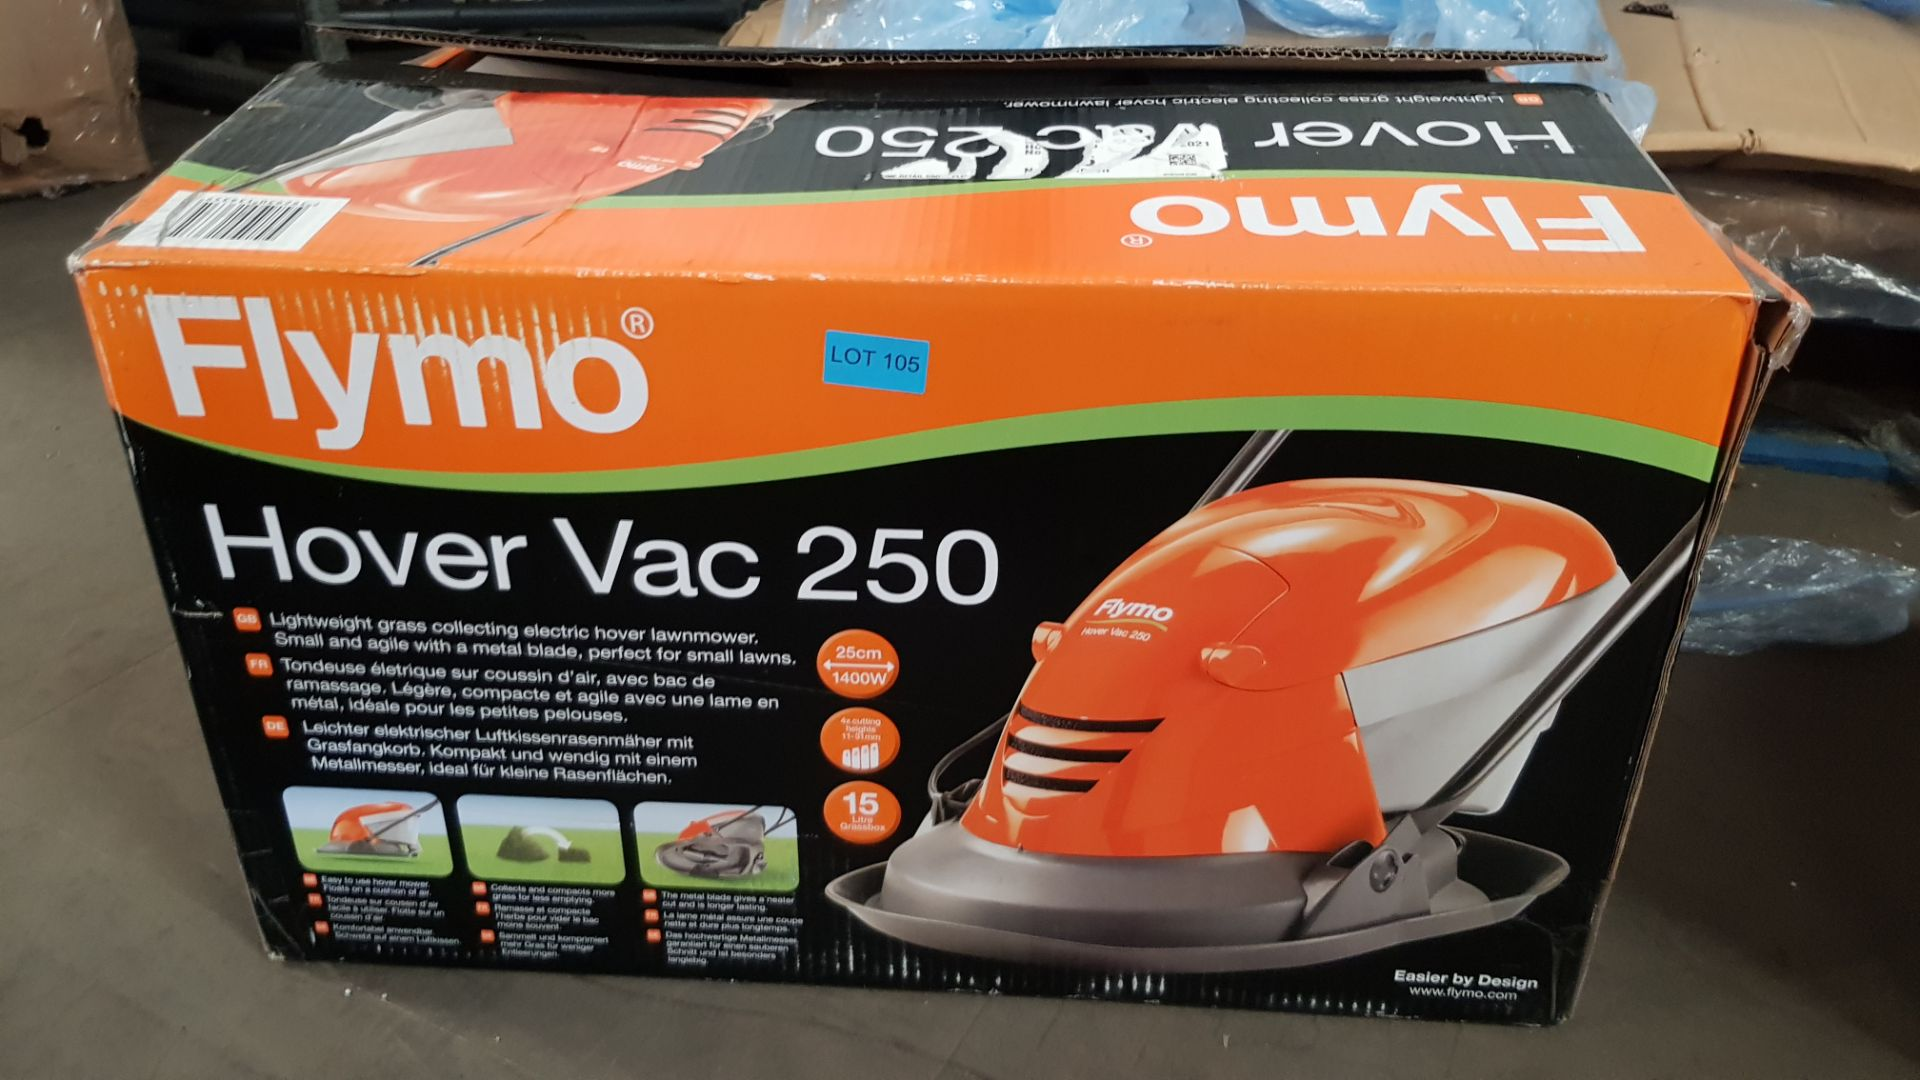 (P2) 1x Flymo HoverVac 250 RRP £80. Unit Appears Clean, Unused & As New. - Image 3 of 5